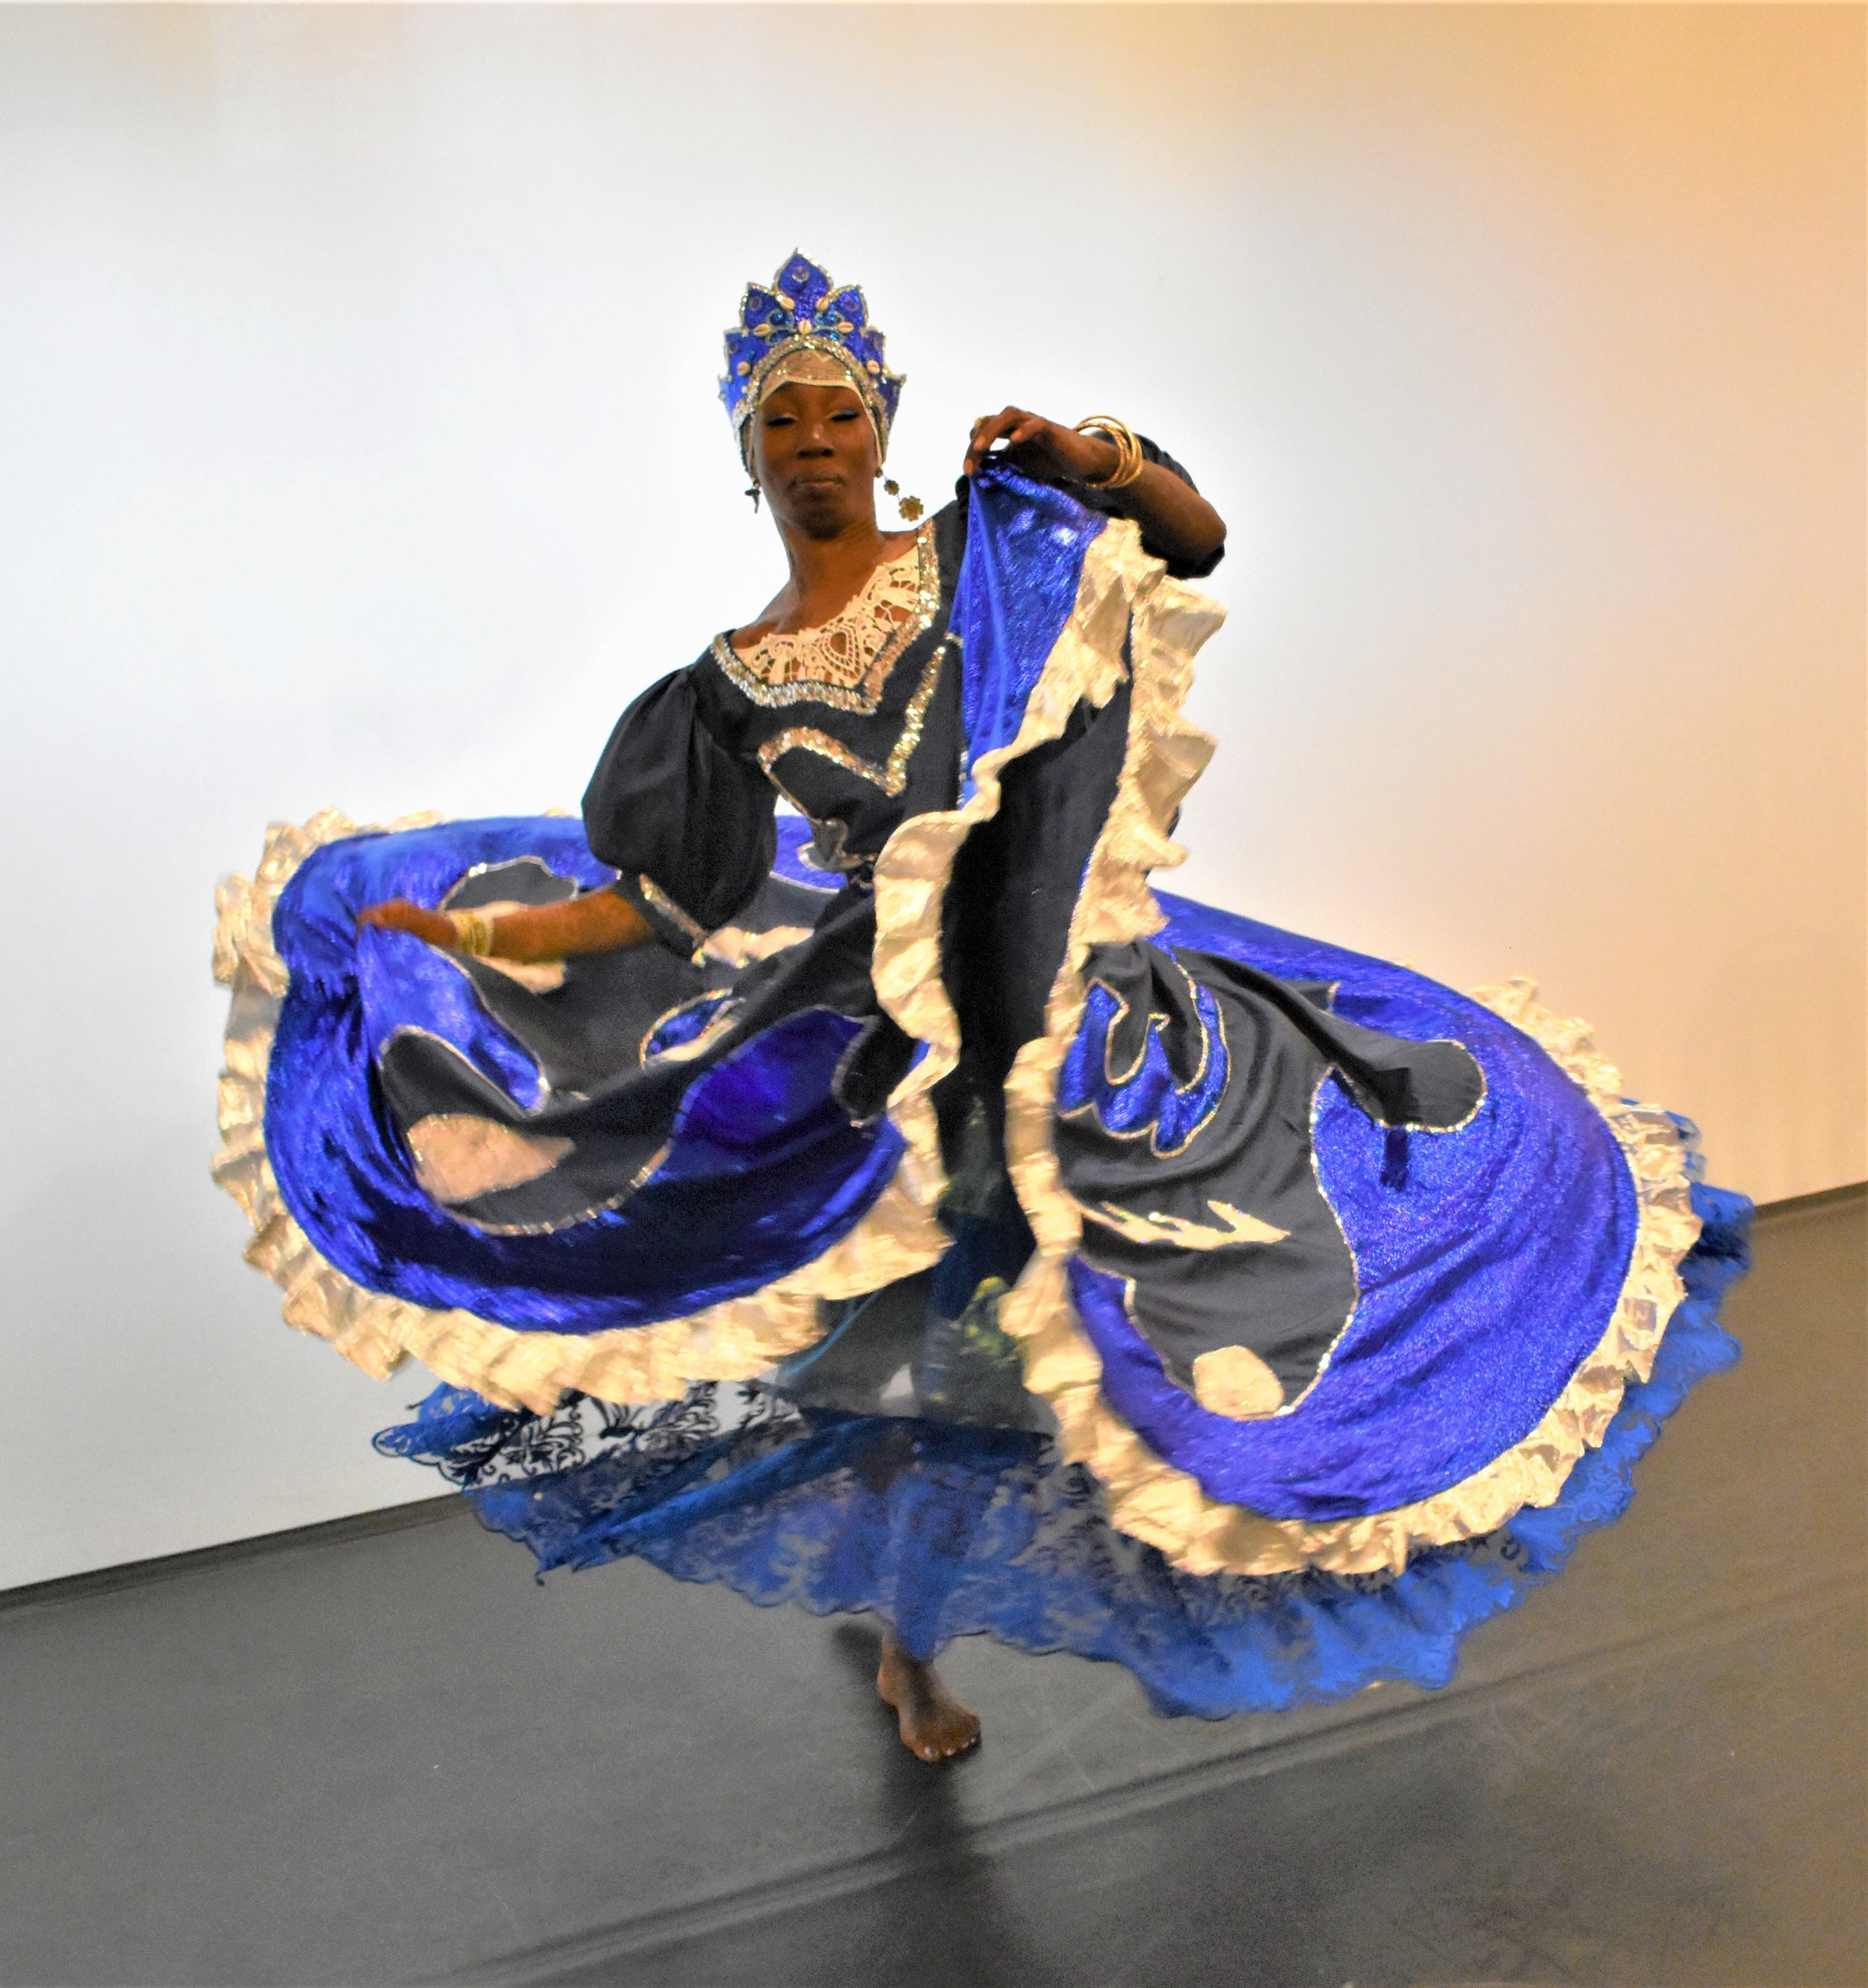 Ama Schley as Yemaya, the goddess of the ocean and rivers, including the River Ogun. Her name means